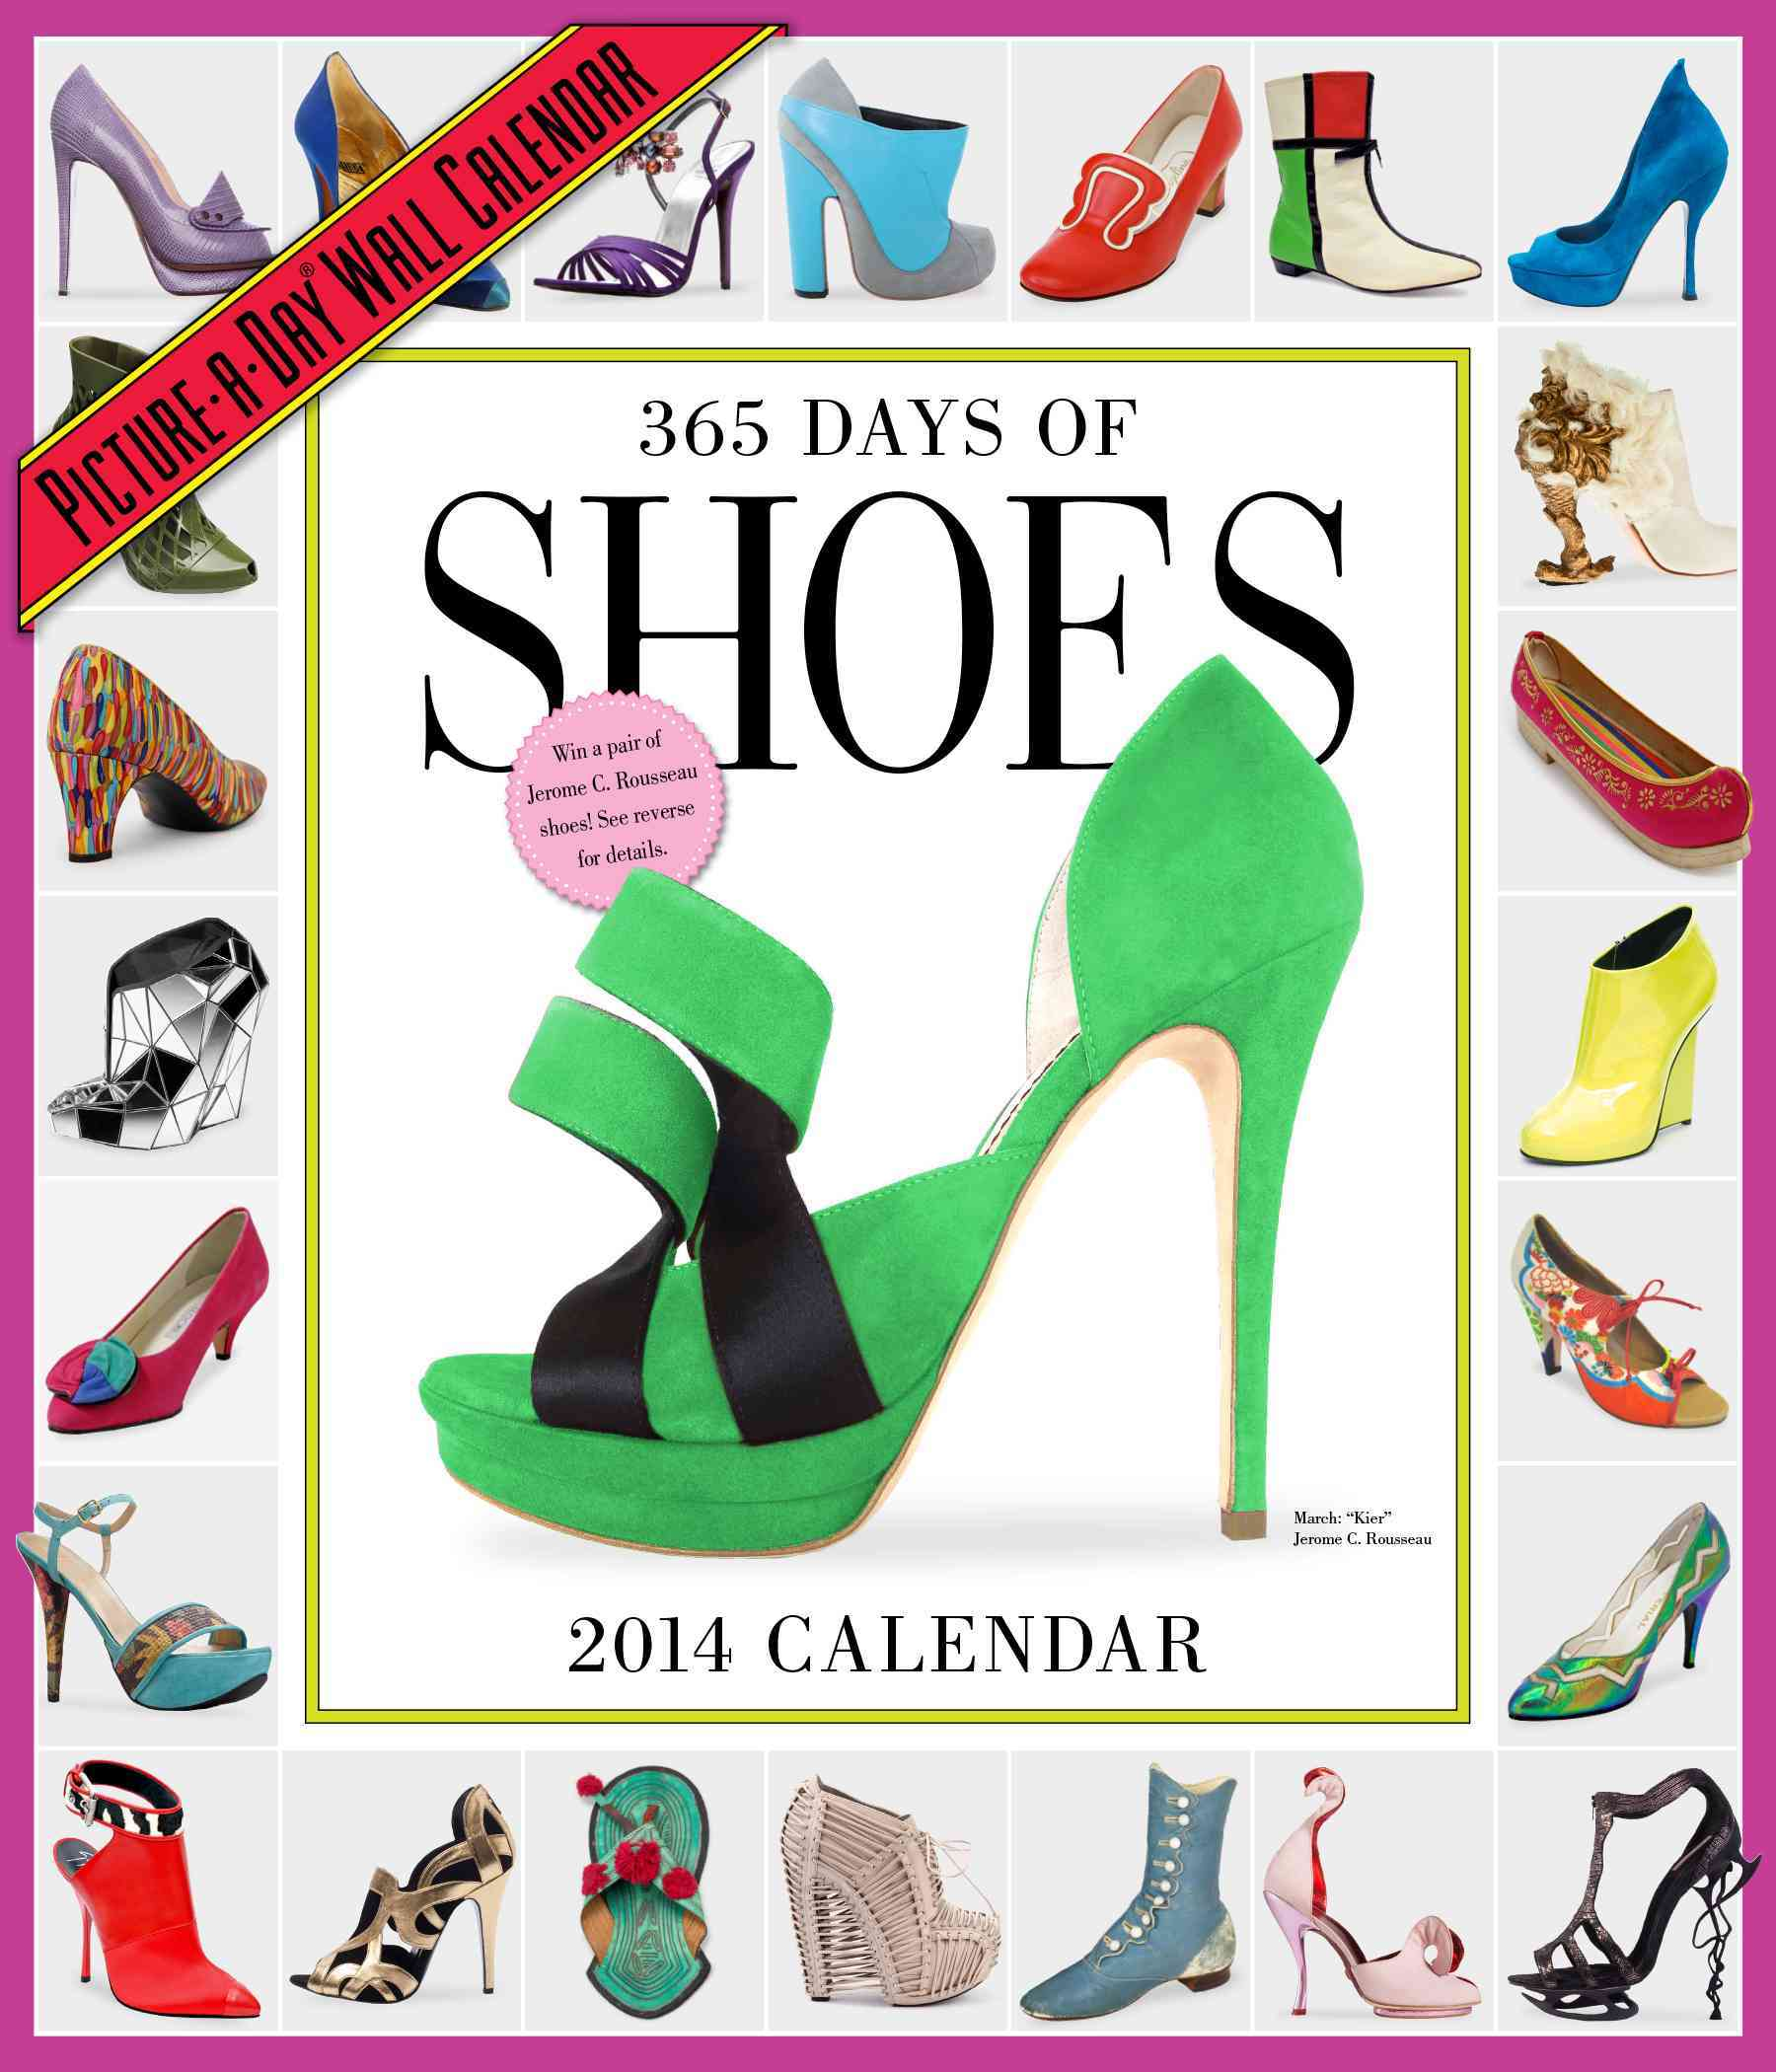 365 Days of Shoes 2014 Calendar (Calendar)